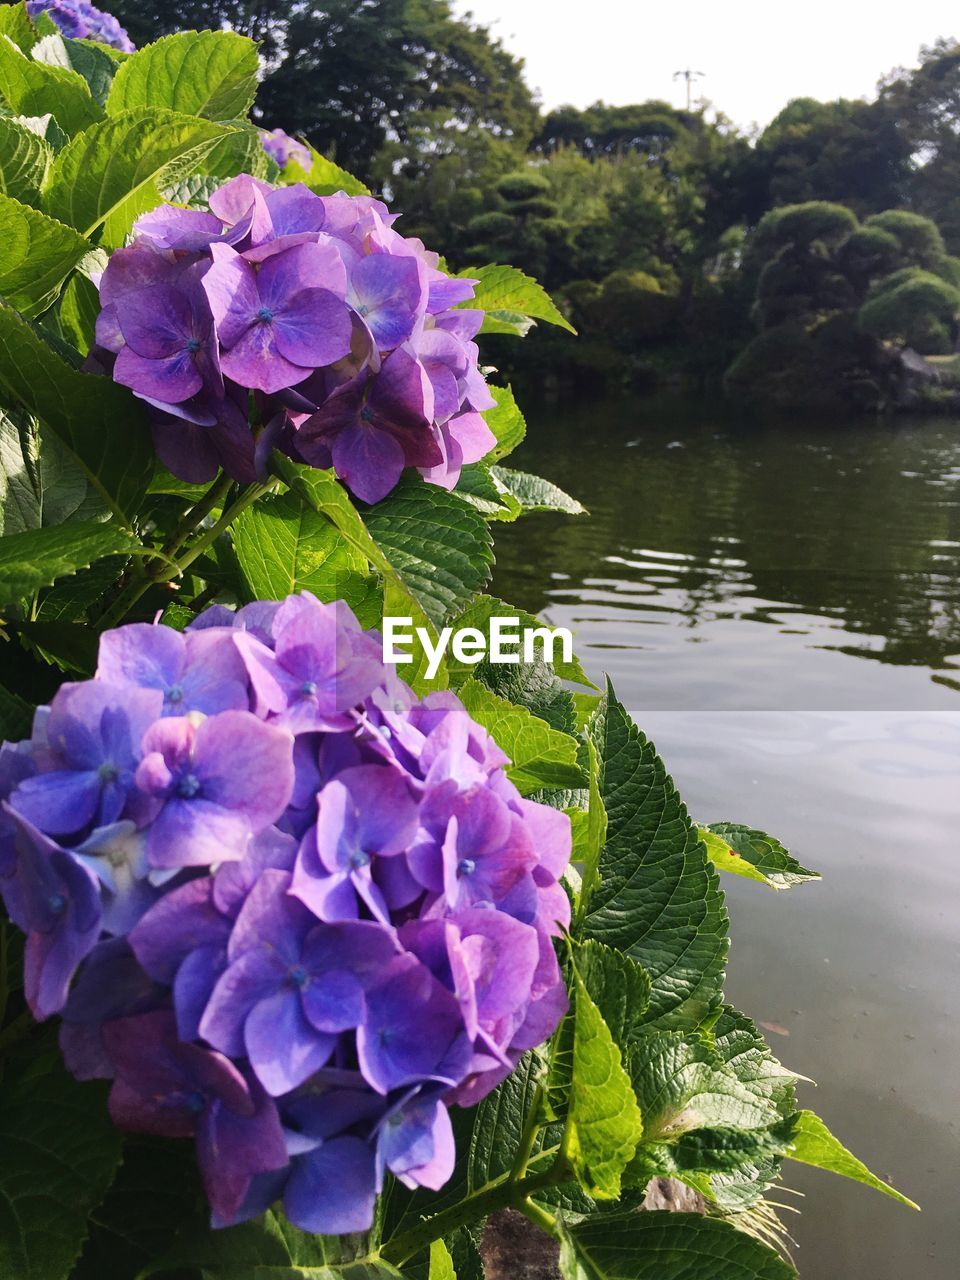 flower, growth, beauty in nature, nature, purple, plant, leaf, outdoors, day, petal, fragility, freshness, no people, green color, water, blooming, close-up, flower head